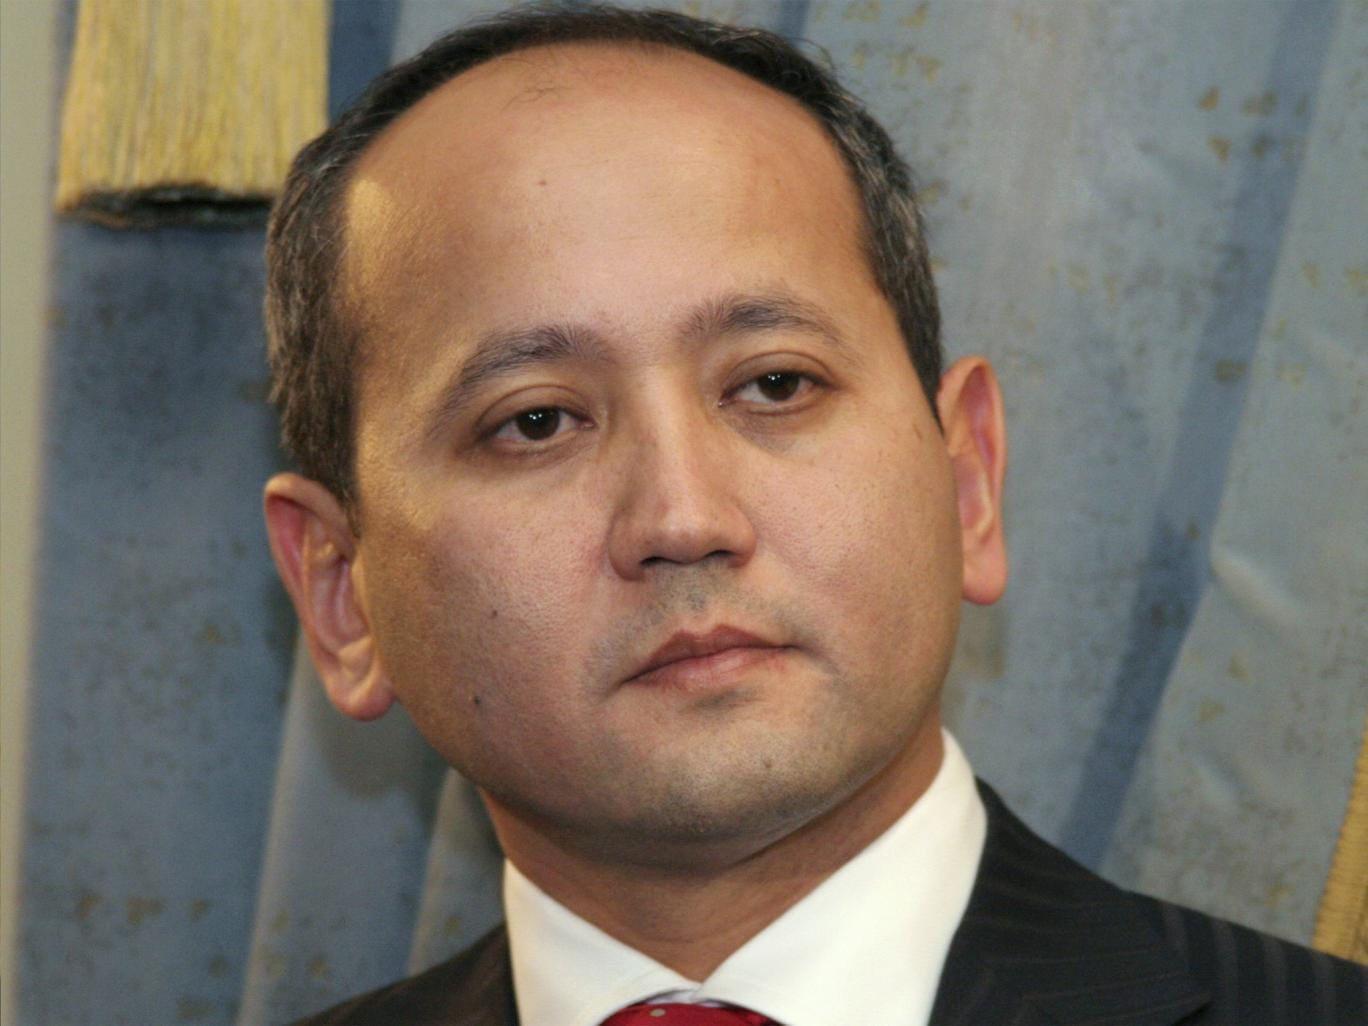 Mukhtar Ablyazov, a Kazakh businessman, has been accused of one of the world's biggest frauds